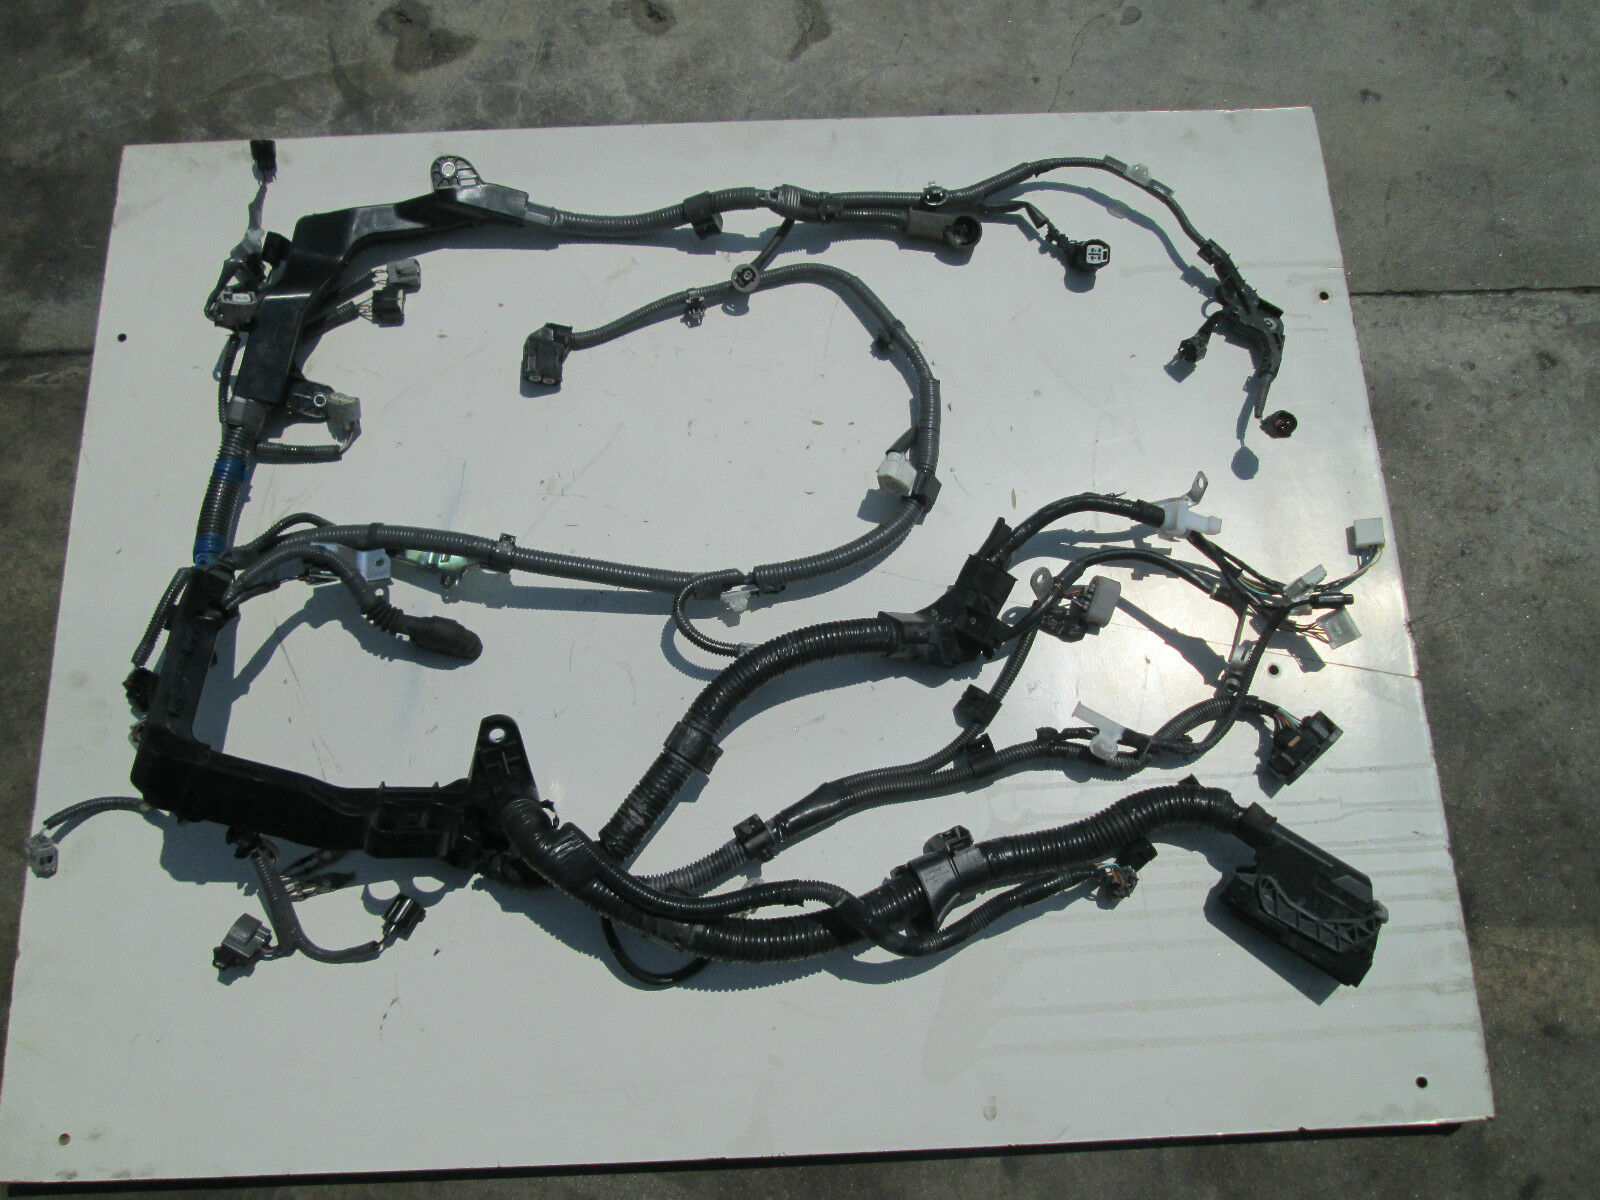 2012 2013 toyota camry engine wire harness pictures toyota 4runner engine wiring harness toyota rav4 engine wiring harness